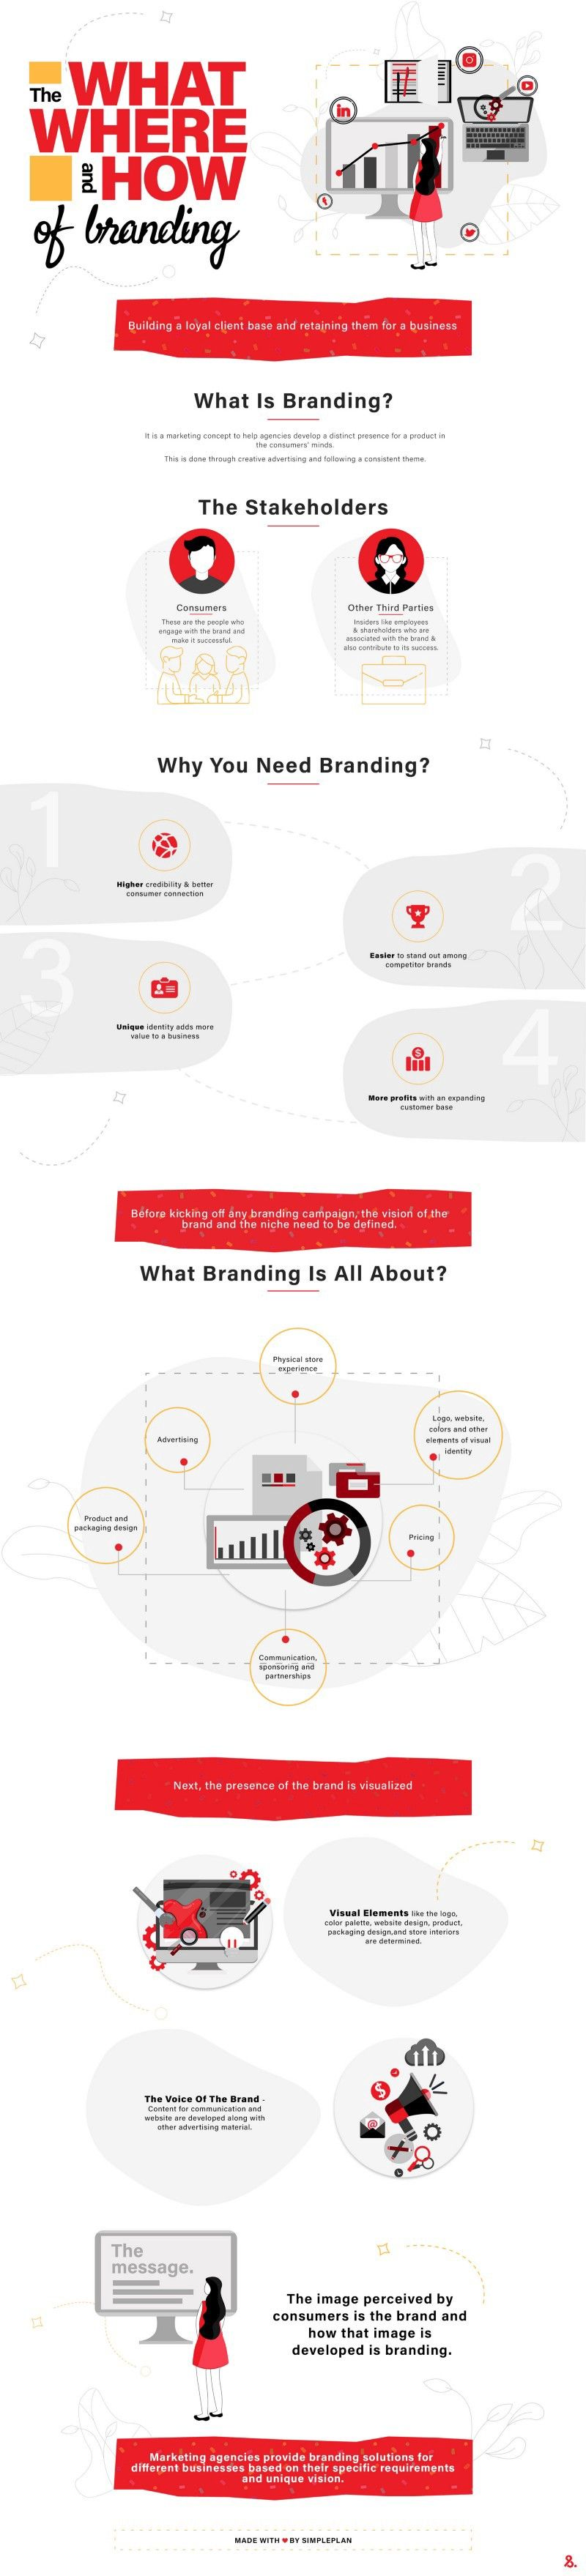 A (relatively simple) infographic about branding